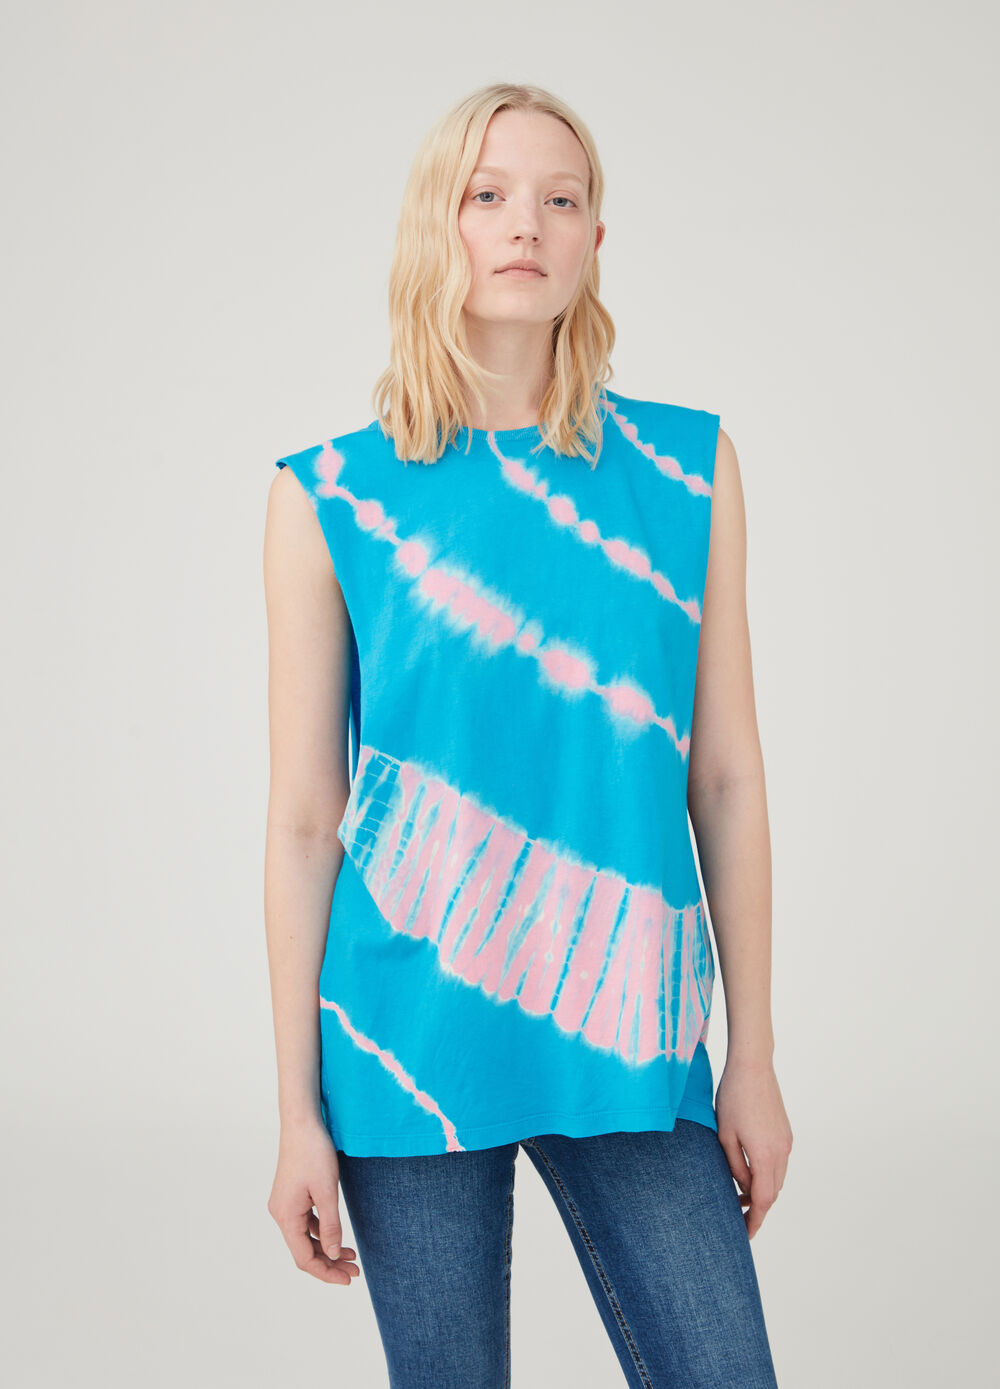 100% cotton oversized tank top with print